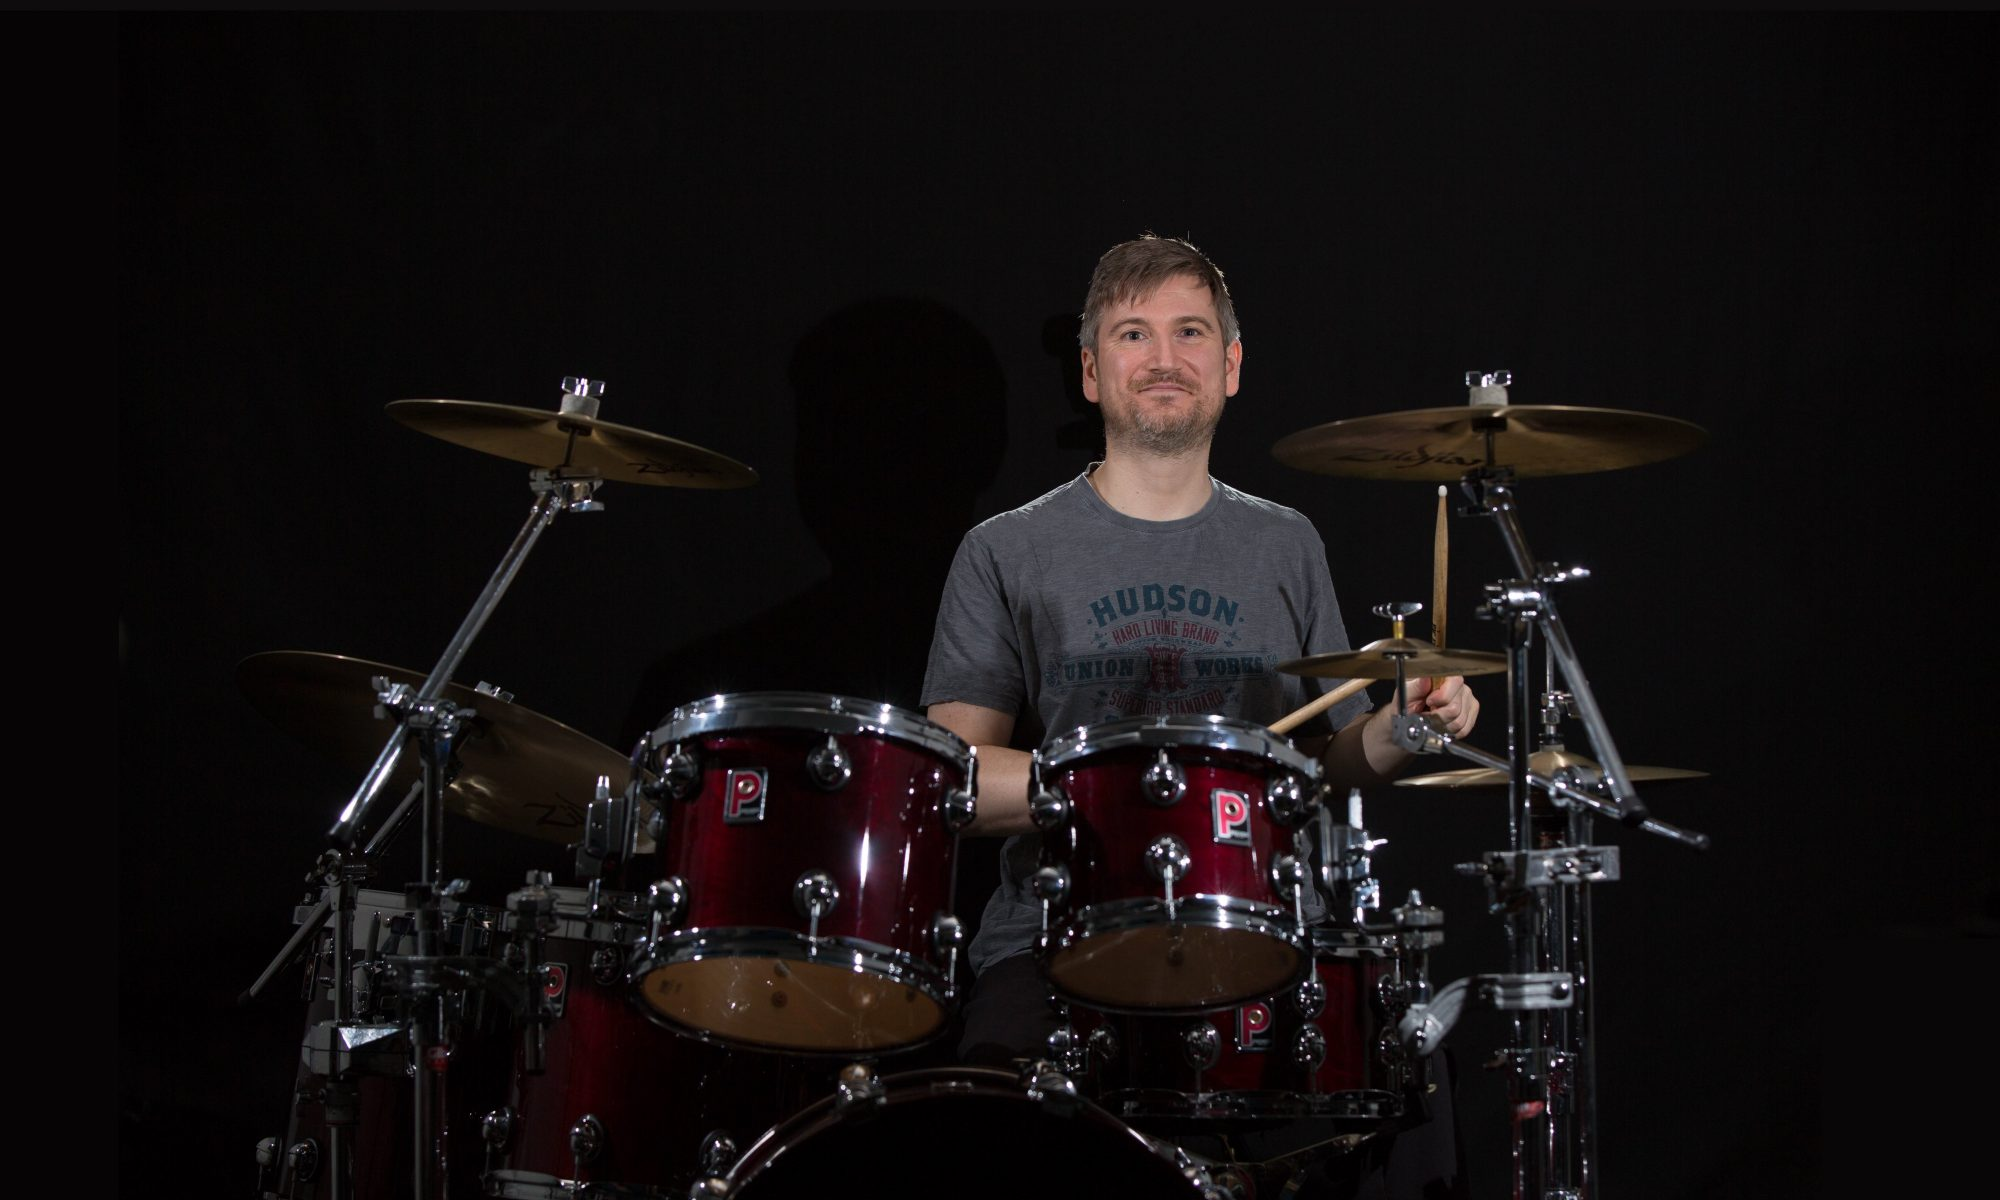 Drum Teacher Matthew Johns playing a Premier Genista drumkit.